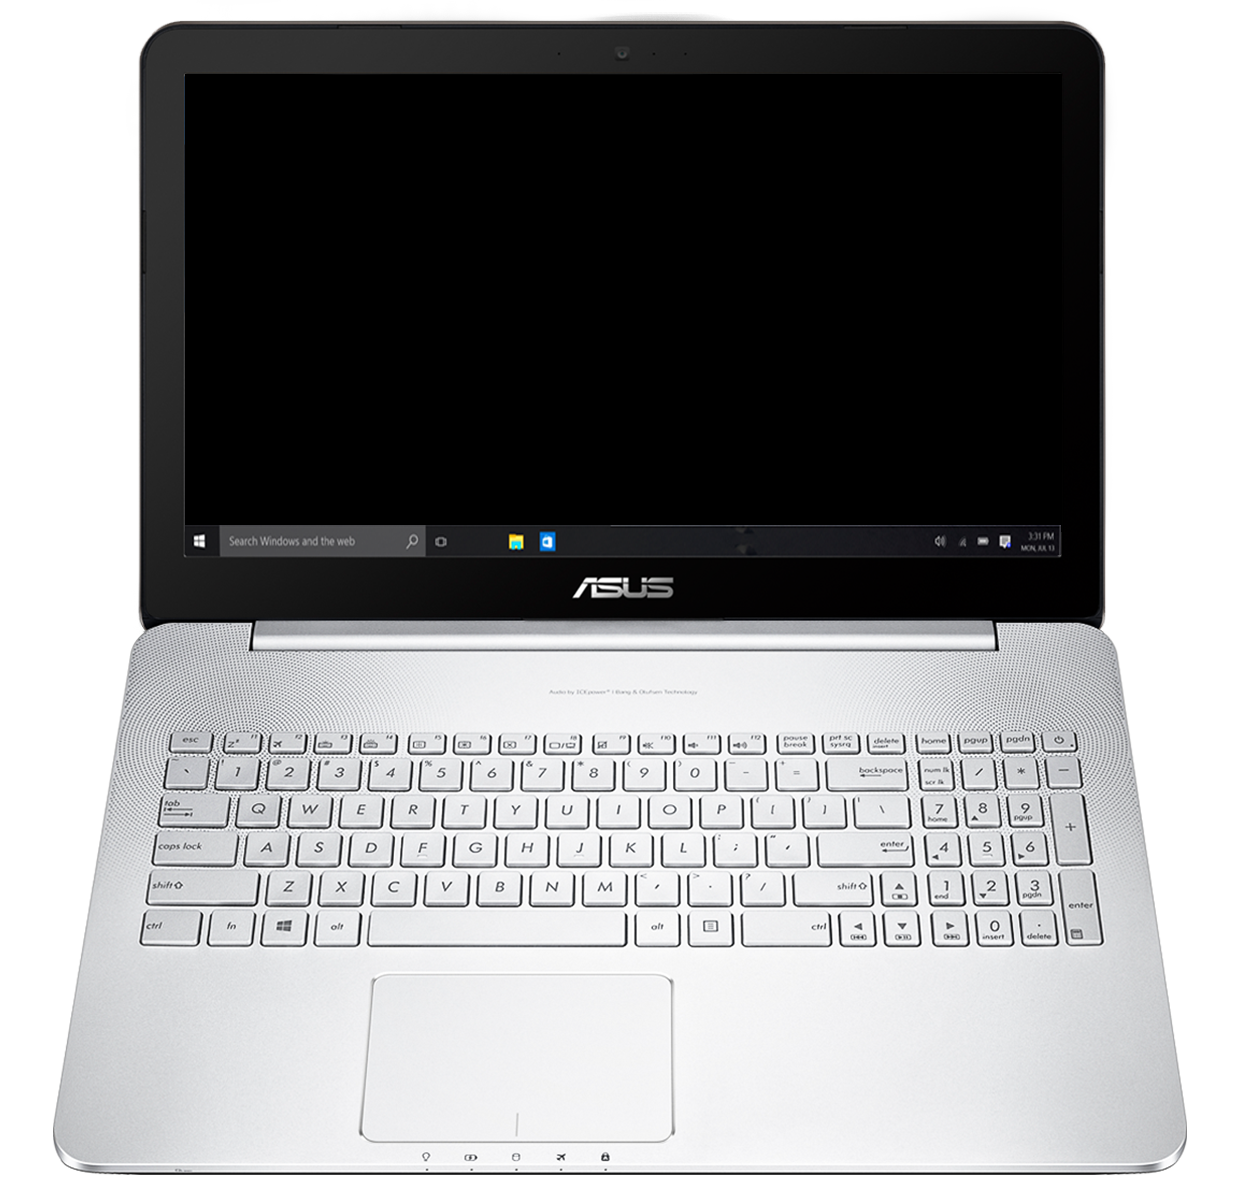 ASUS VivoBook Pro N552VX Atheros WLAN Drivers for Windows 10